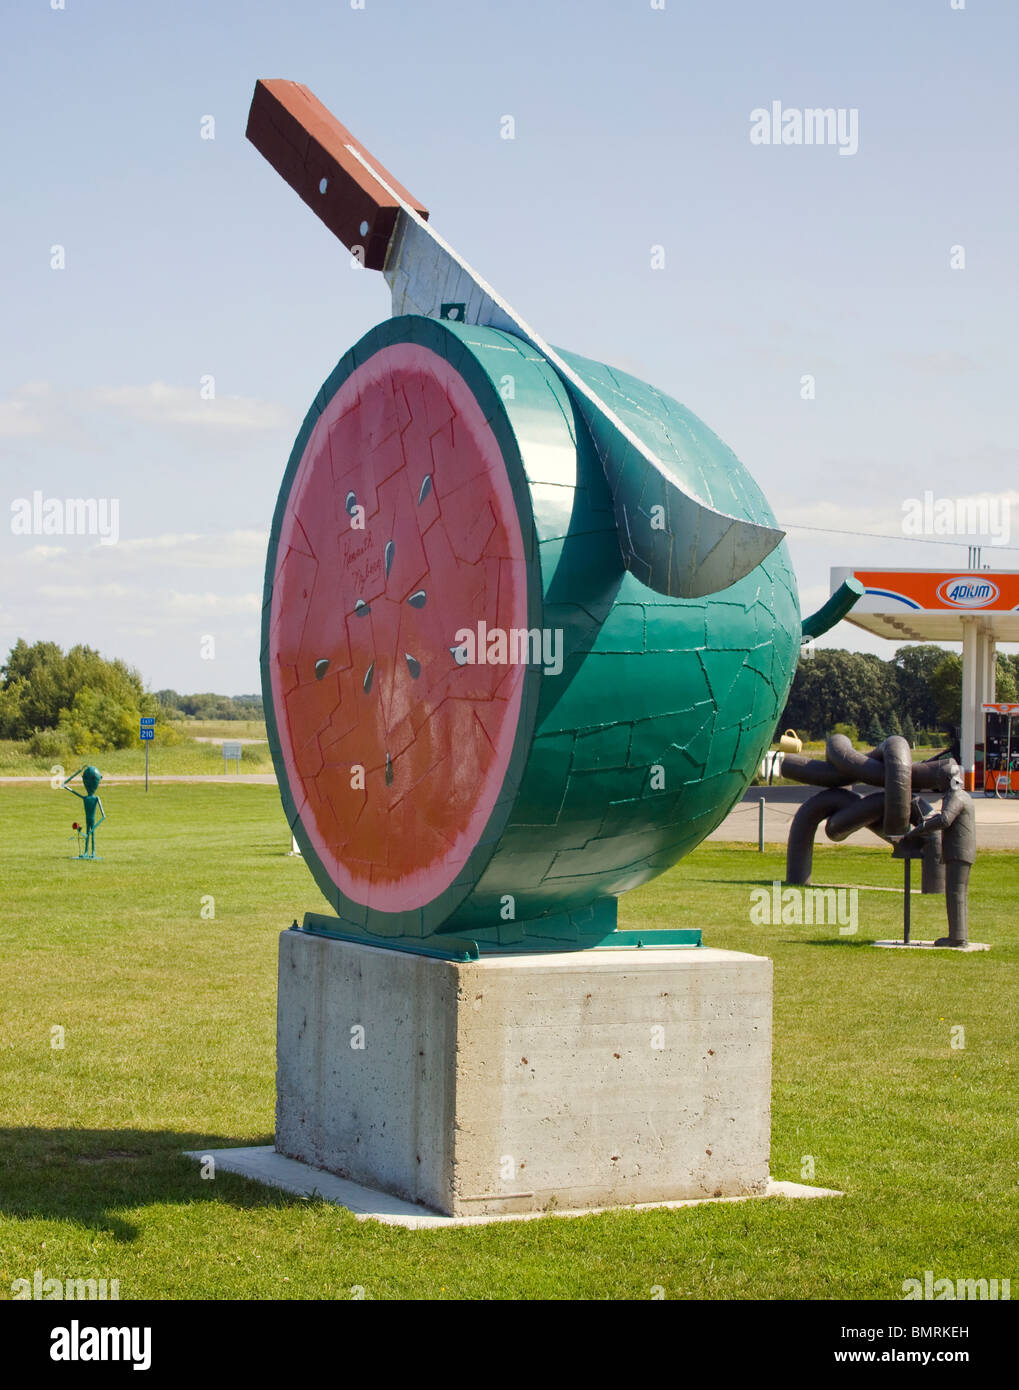 Ken Nybergs Watermelon Sculpture in Vining Minnesota - Stock Image